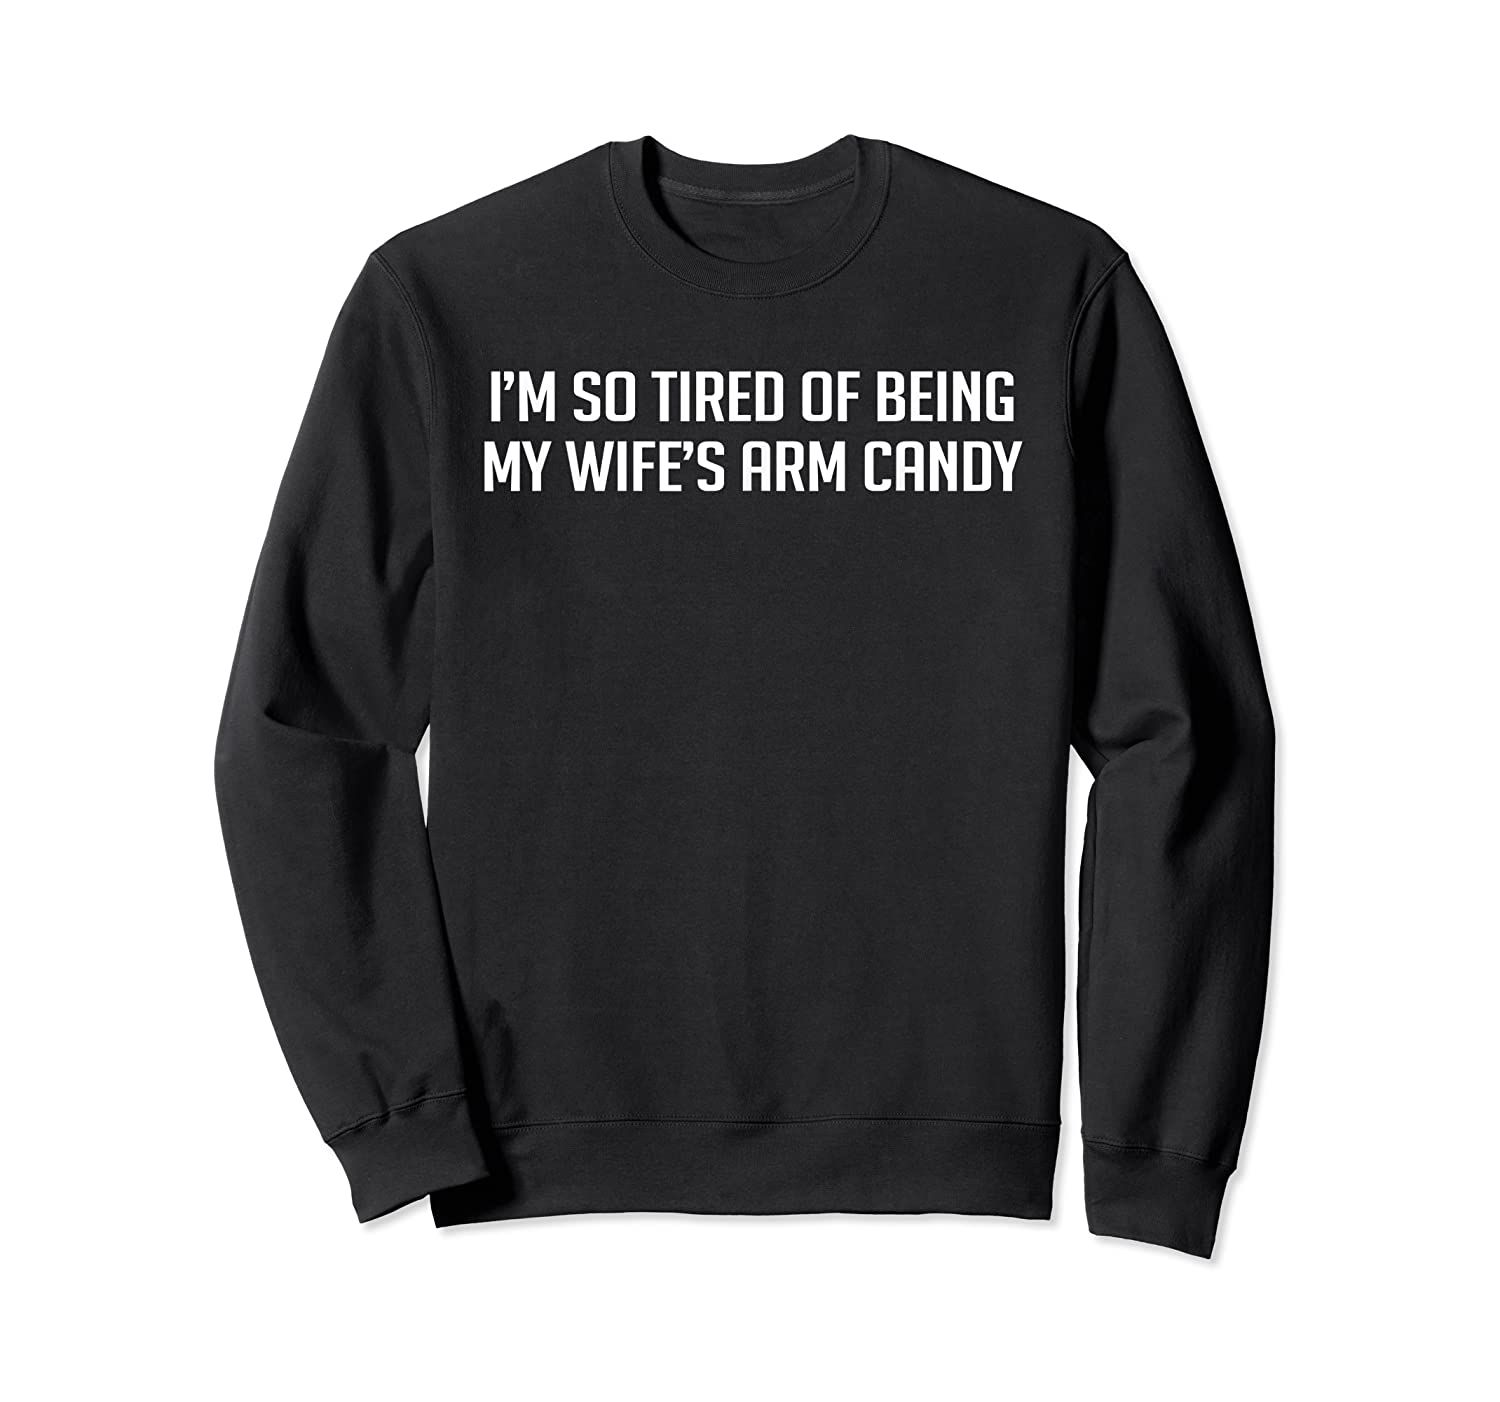 I'm So Tired Of Being My Wife's Arm Candy Shirts Crewneck Sweater